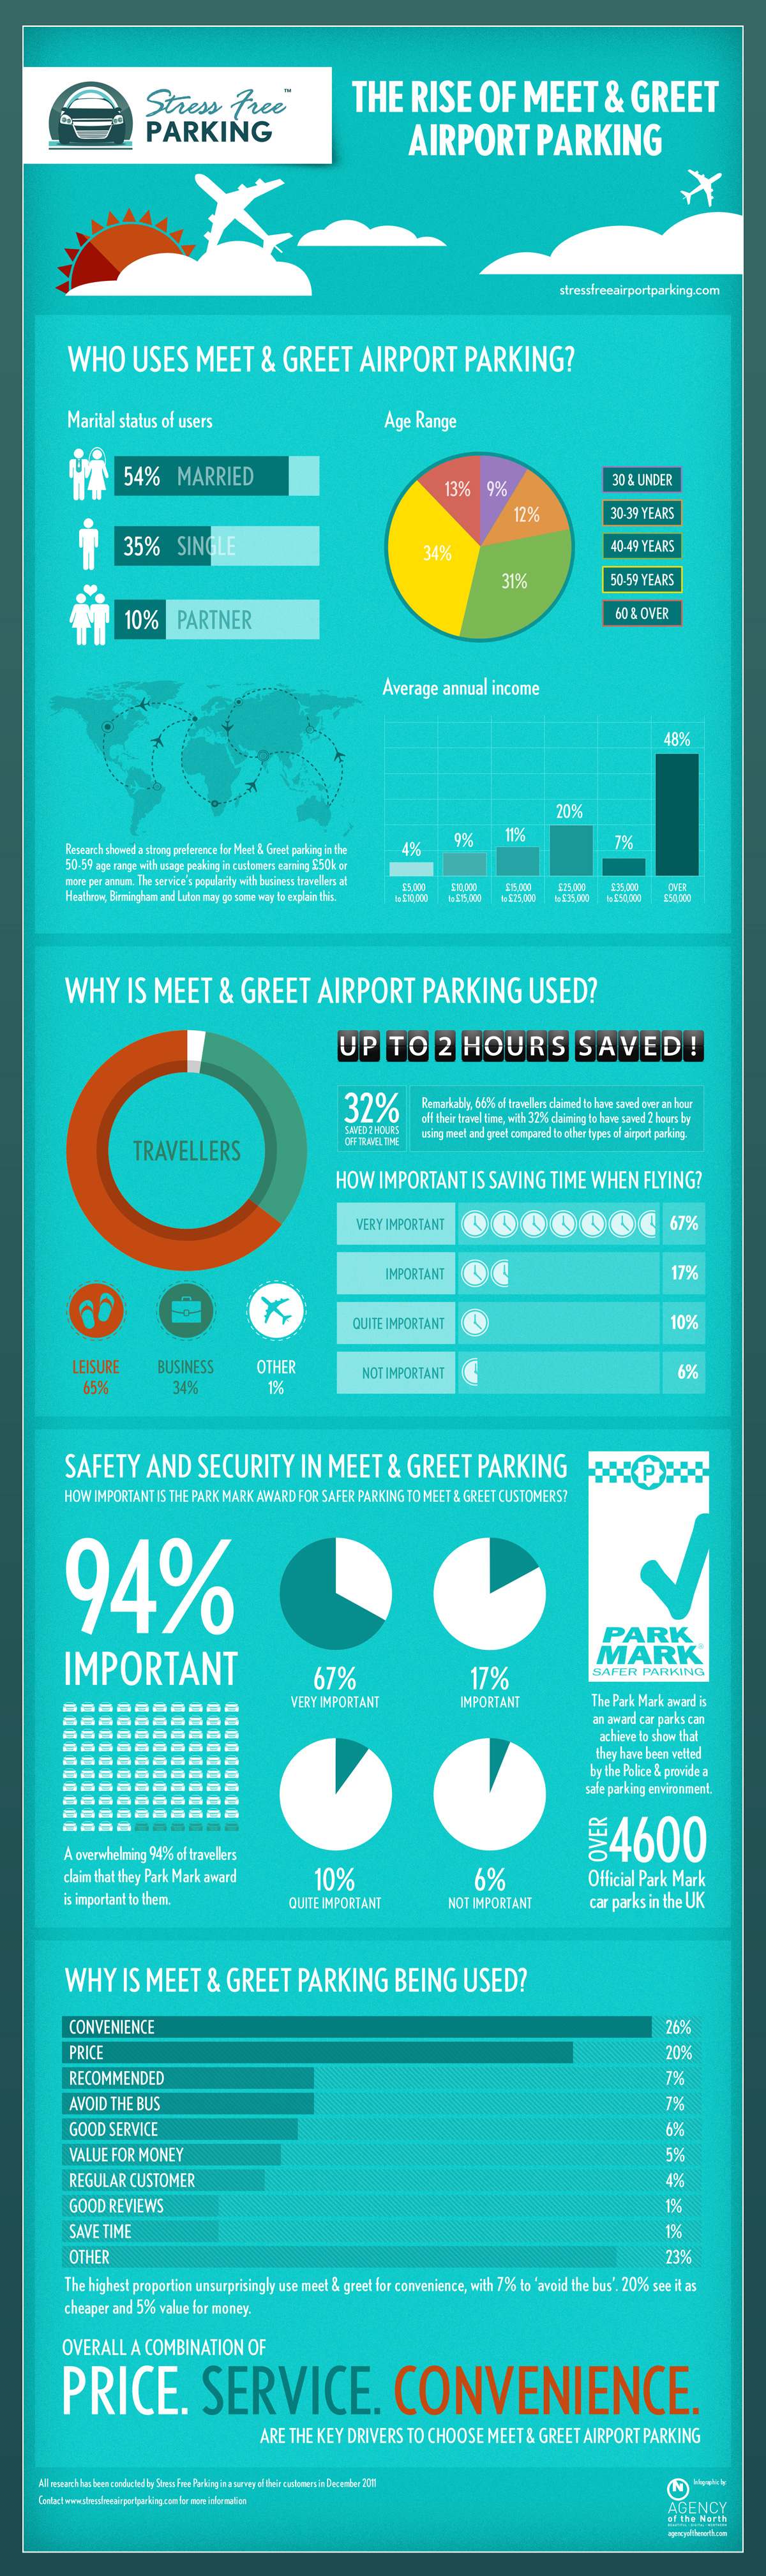 The rise of meet greet airport parking infographic cool the rise of meet greet airport parking infographic kristyandbryce Choice Image